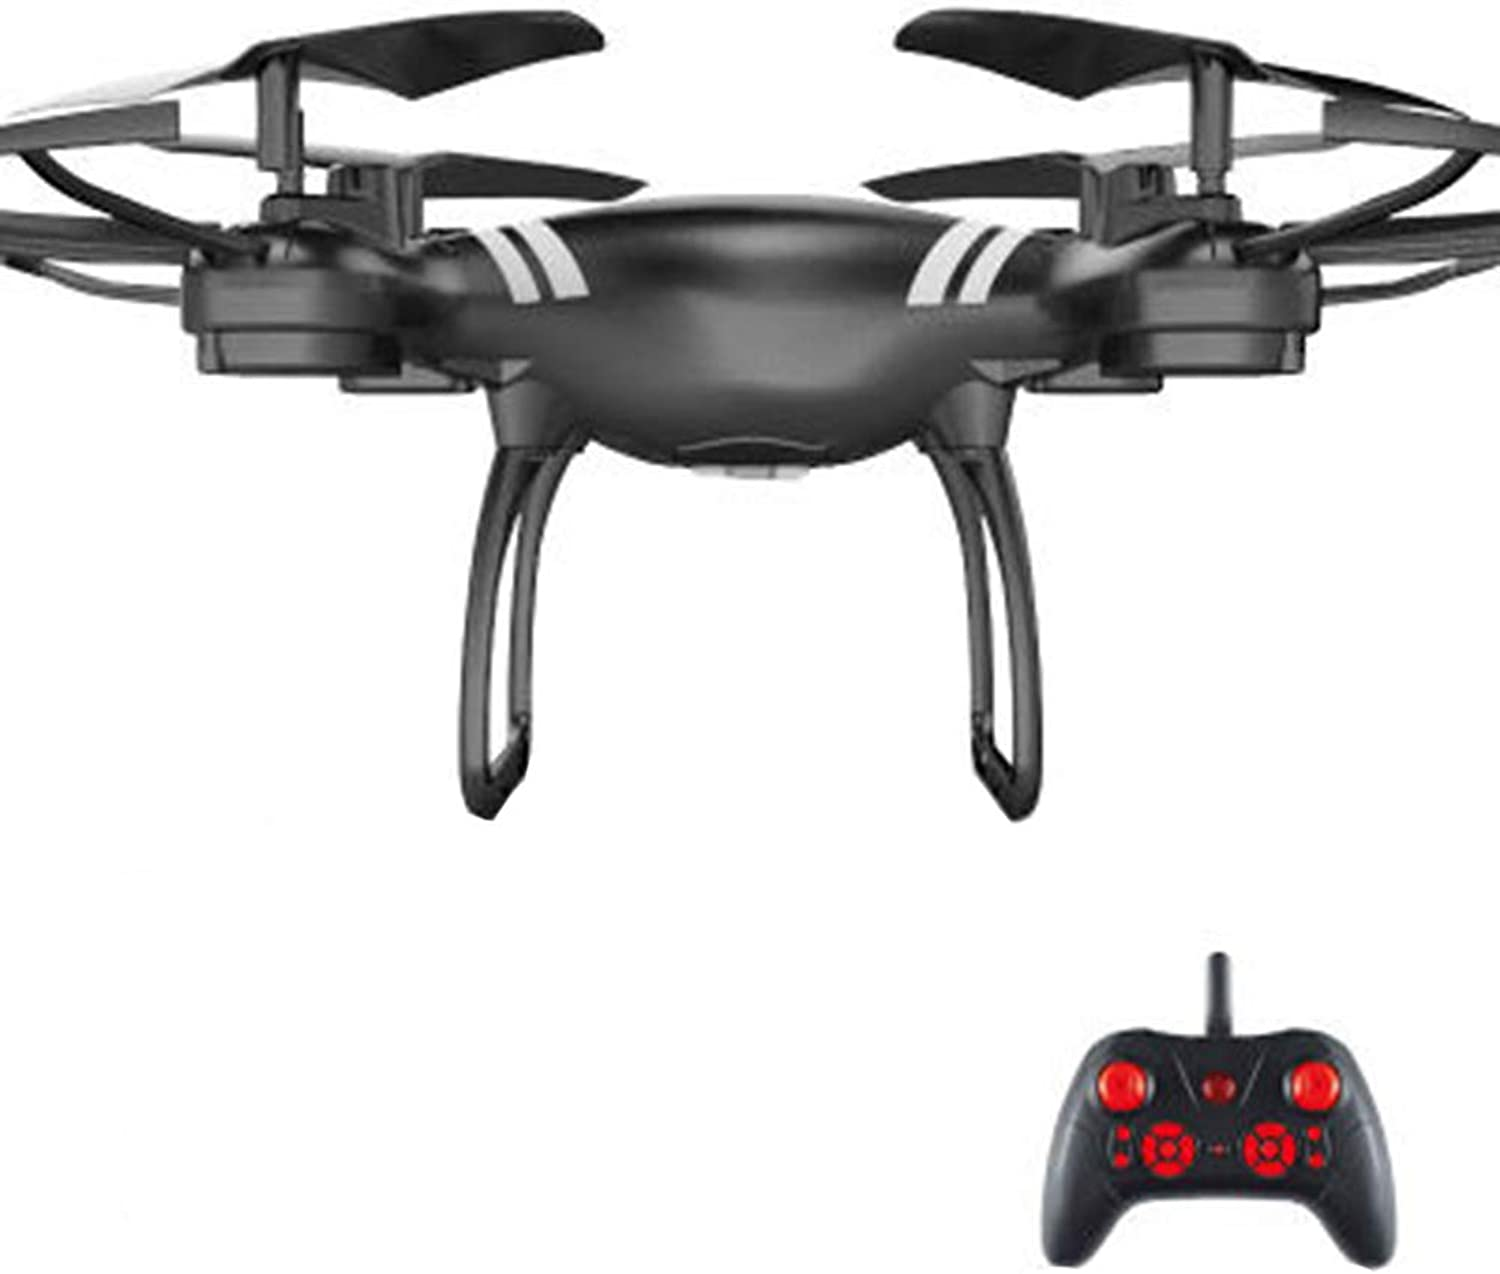 JEFFZH FPV Drone with WiFi,Best Drone for Beginners with Altitude Hold,Gravity sensing control, GSensor, Trajectory Flight, 3D Flips, Headless Mode, One Key Operation, 2 Batteries, Black